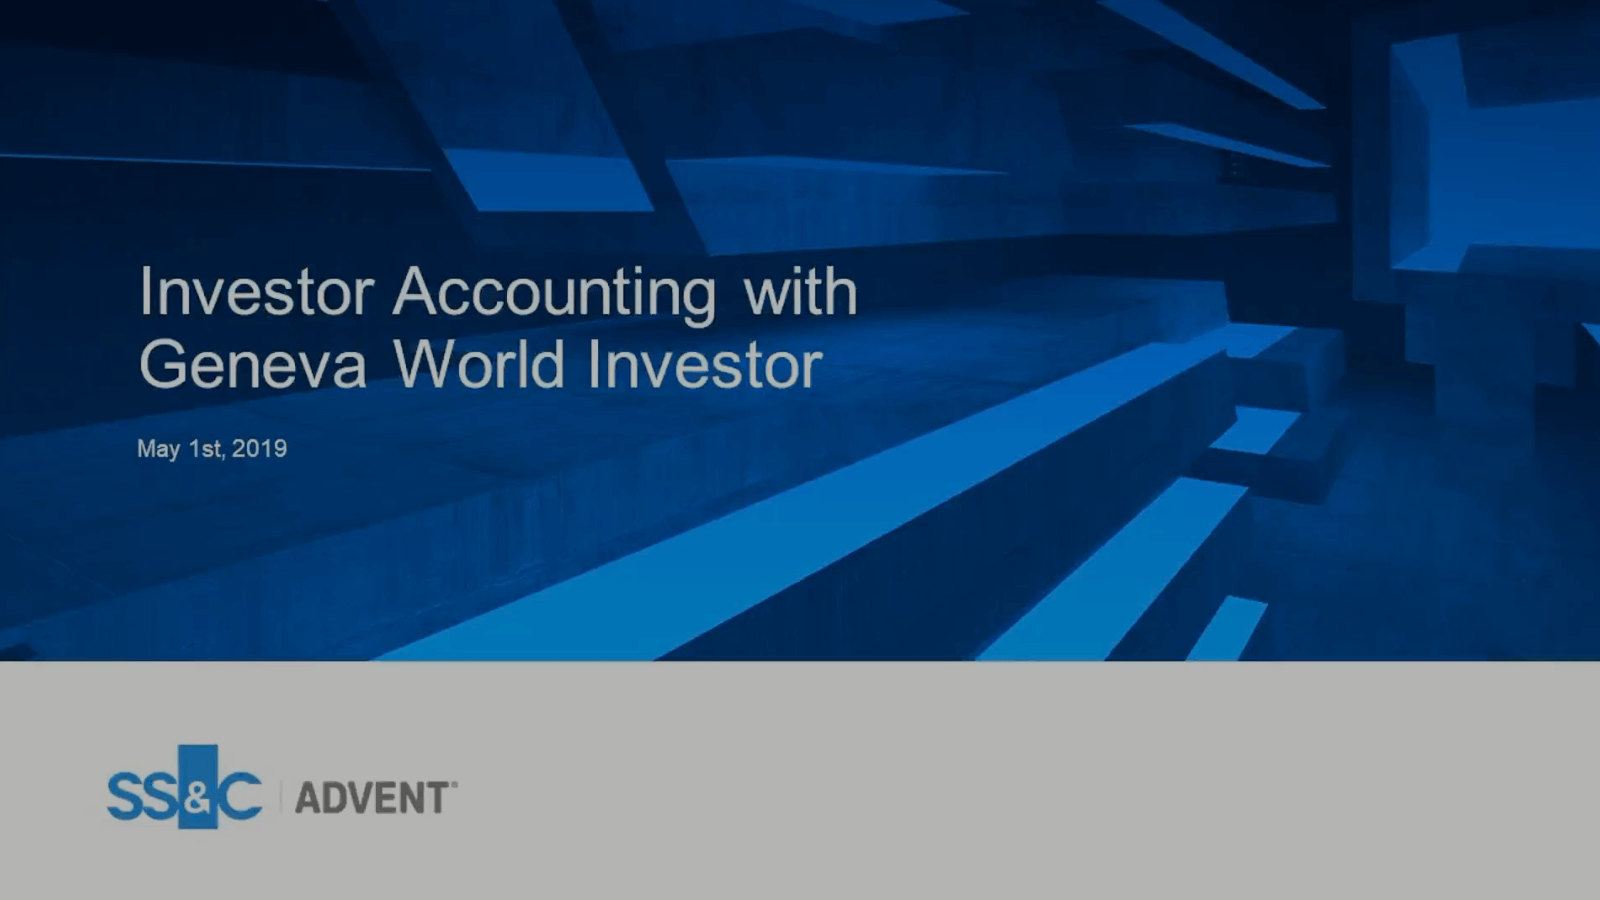 poster image for Investor accounting with Geneva World Investor